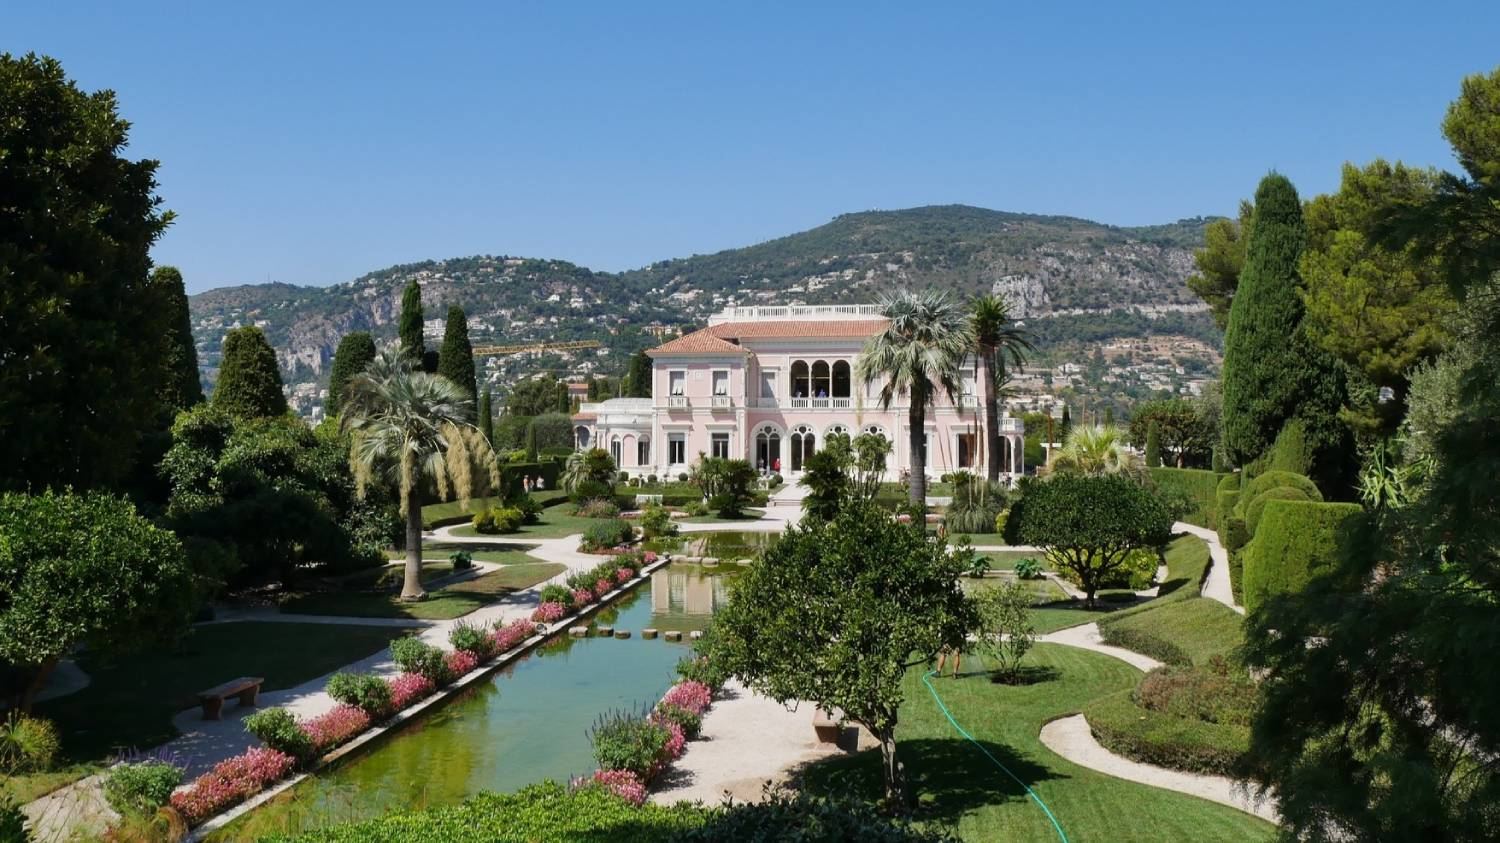 Villa Ephrussi de Rothschild - Things To Do In Nice